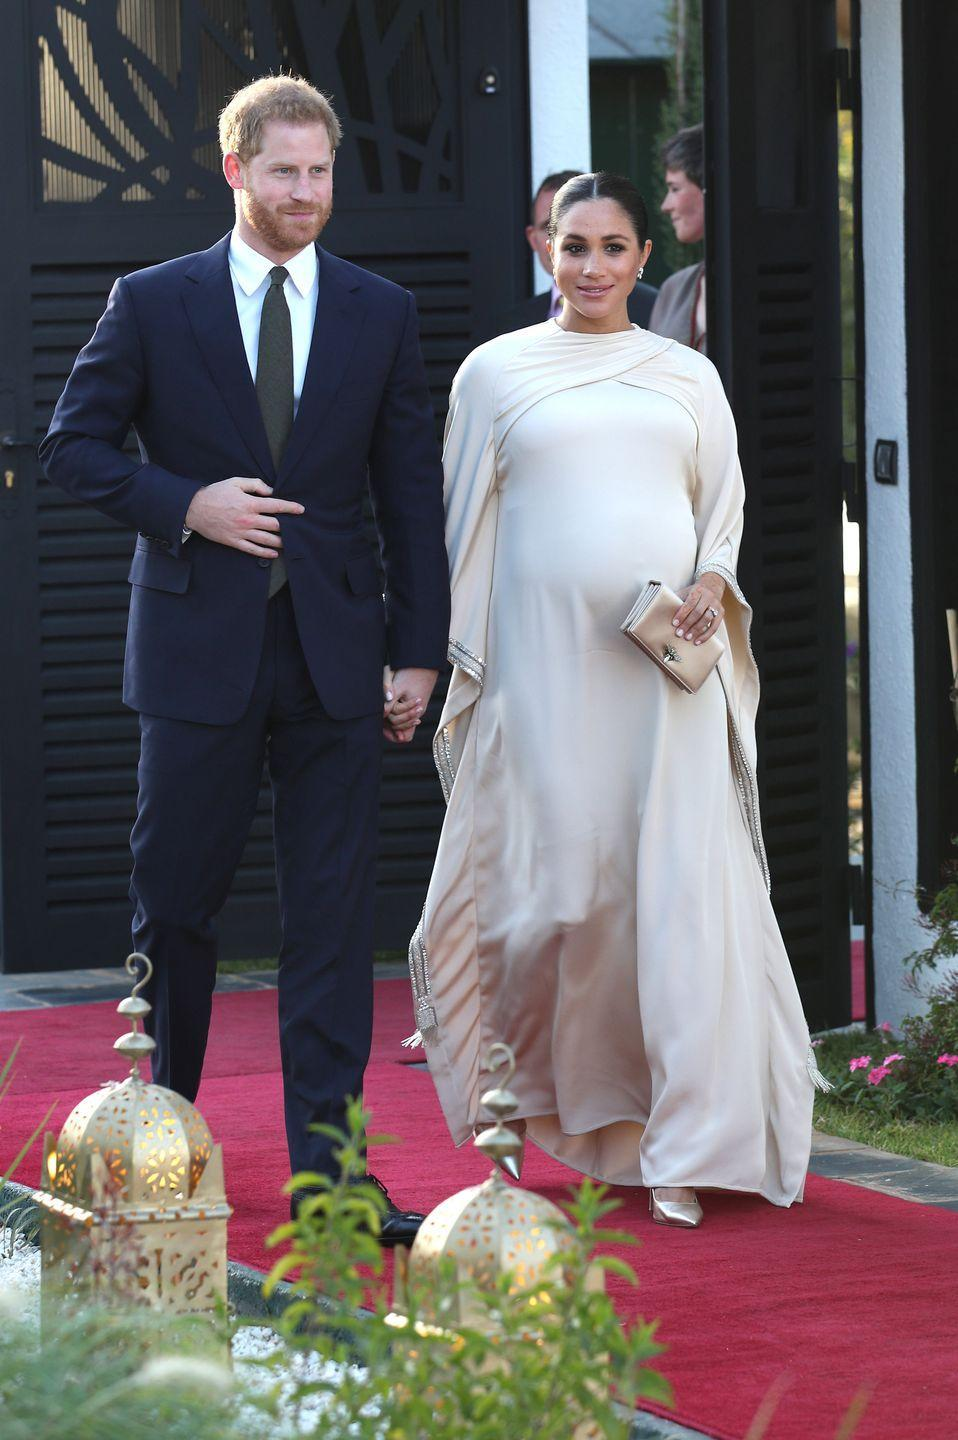 "<p>Meghan arrived at the British Ambassador residence wearing a gorgeous bespoke Dior gown. She paired the look with <a href=""https://www.maisonbirks.com/en/birks-snowflake-snowstorm-diamond-earrings-in-white-gold"" rel=""nofollow noopener"" target=""_blank"" data-ylk=""slk:diamond earrings by Maison Birks"" class=""link rapid-noclick-resp"">diamond earrings by Maison Birks</a>, which she <a href=""https://www.townandcountrymag.com/style/fashion-trends/a24183870/meghan-markle-white-theia-gown-dinner-tonga-photo/"" rel=""nofollow noopener"" target=""_blank"" data-ylk=""slk:wore on her Oceanic tour"" class=""link rapid-noclick-resp"">wore on her Oceanic tour</a>, <a href=""https://us.vestiairecollective.com/women-bags/dior/d-bee/"" rel=""nofollow noopener"" target=""_blank"" data-ylk=""slk:a satin clutch"" class=""link rapid-noclick-resp"">a satin clutch</a> and gold pumps, both by Dior. </p>"